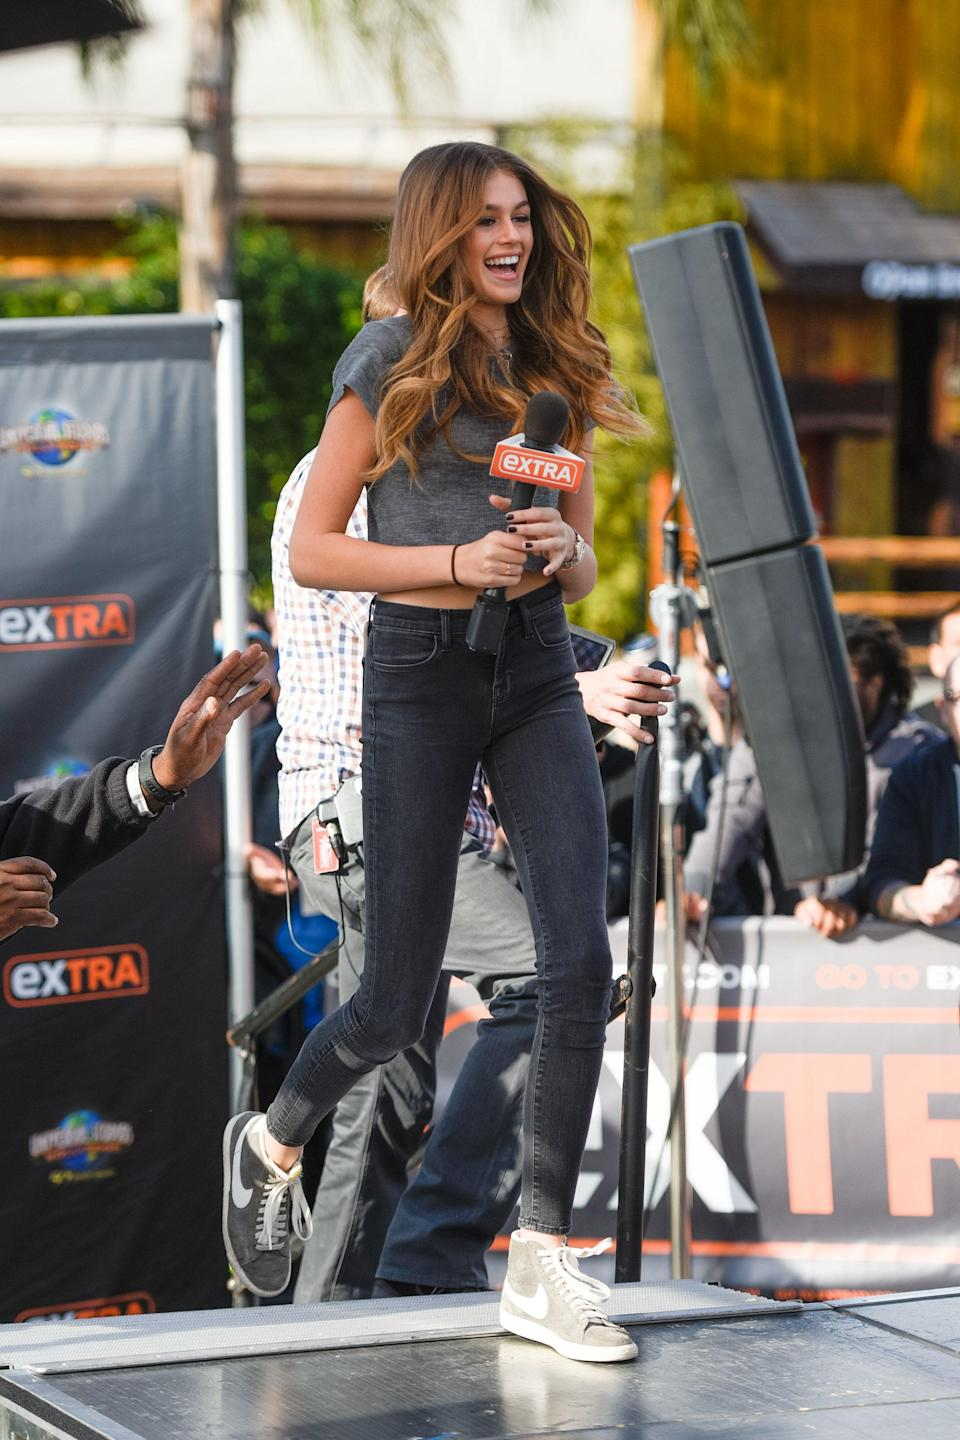 When she stopped by the set of Extra with her mom, she rocked high-waisted skinny jeans, a cropped short-sleeve sweater, and Nike Blazer sneakers.